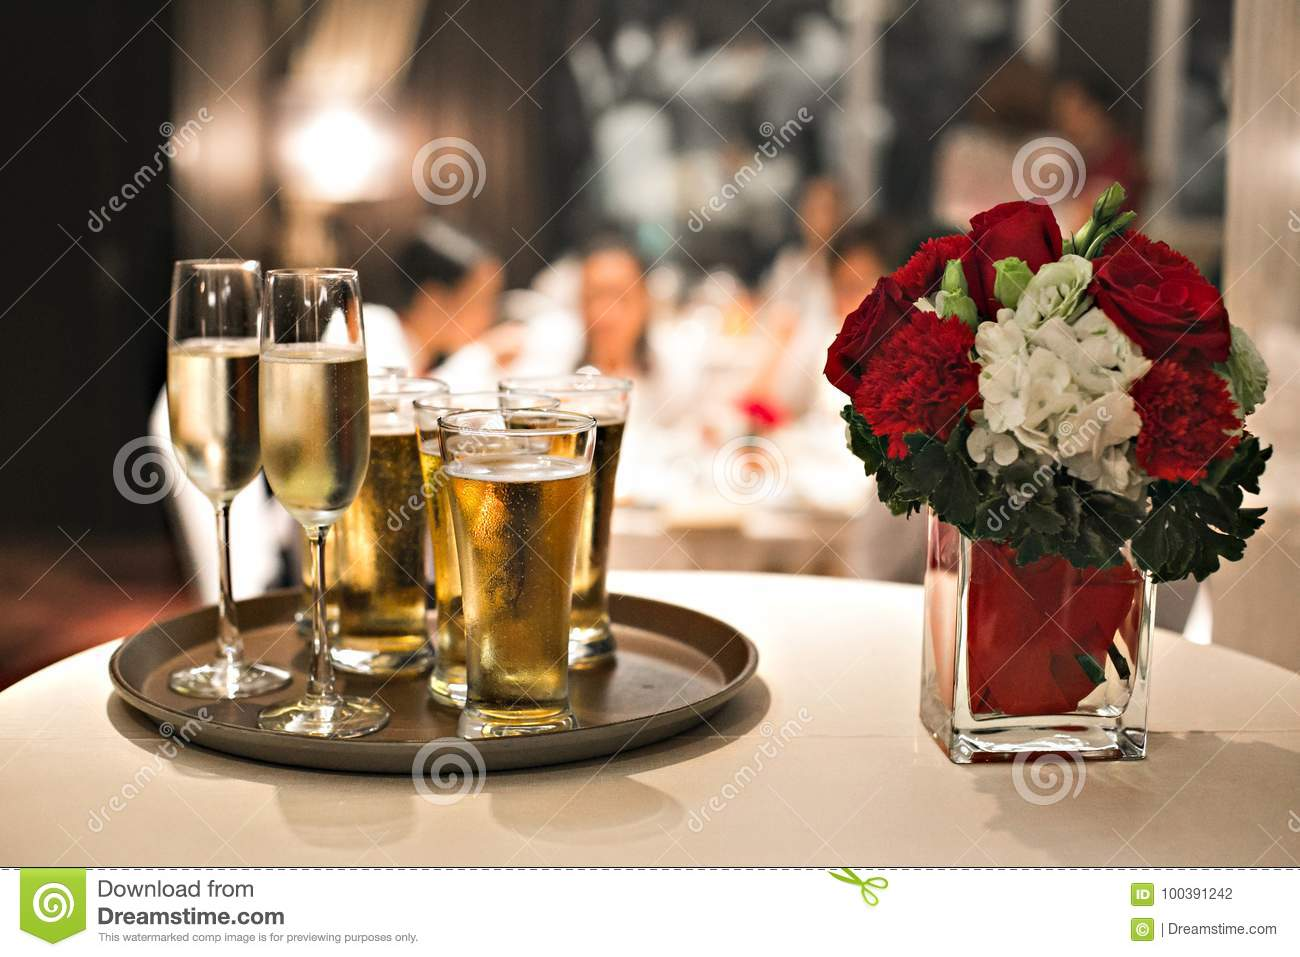 Table wedding glass dinner wine restaurant flower celebration Christmas champagne food decoration party white setting